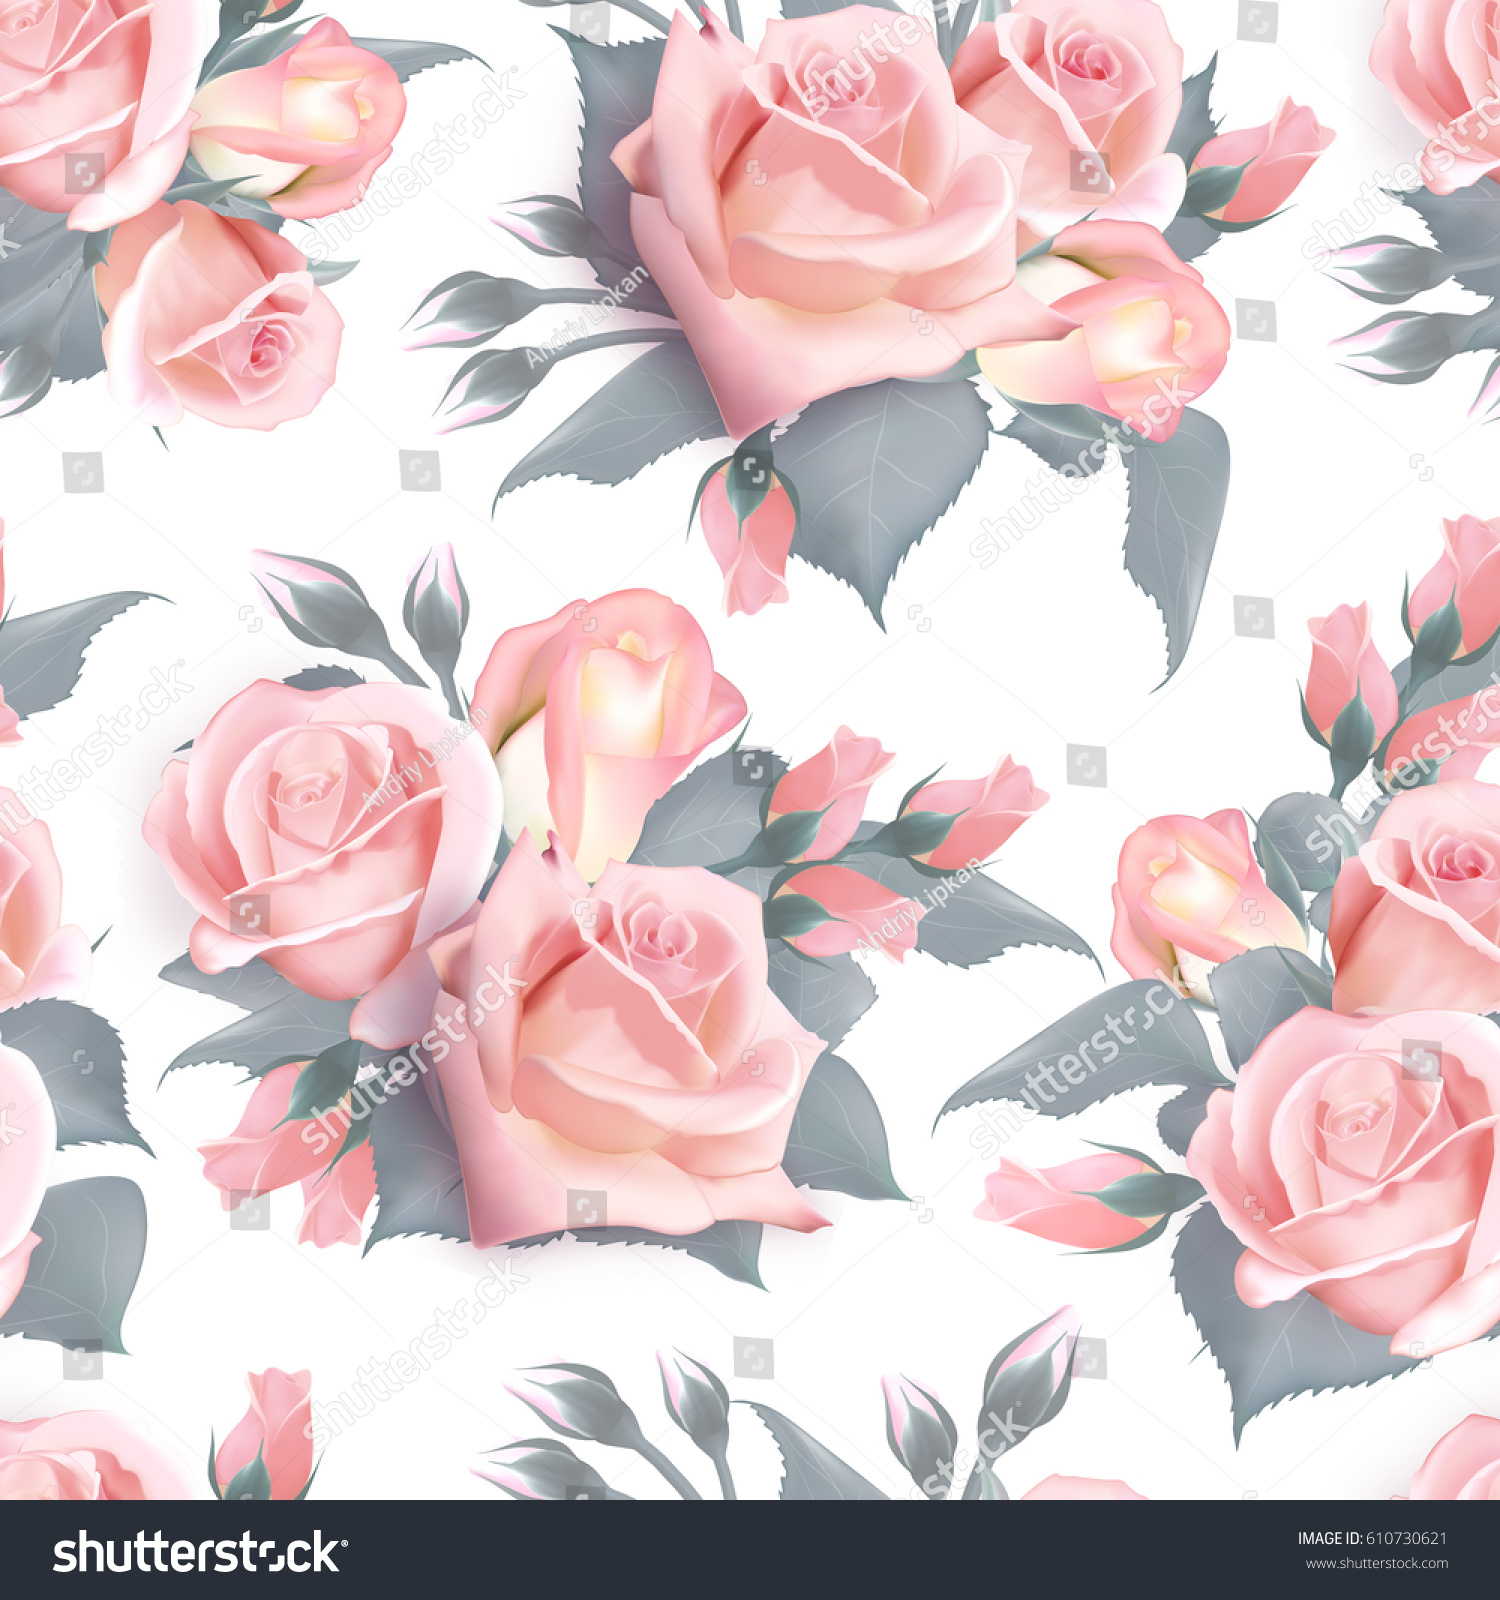 English Roses Seamless Pattern Pink Vintage Stock Photo (Photo ... on rosary garden designs, simple garden designs, small urban garden designs, small formal garden designs, no maintenance garden designs, terrace garden designs, herb garden designs, fairy garden designs, minecraft garden designs, sun garden designs, school garden designs, front garden designs, unique garden designs, small garden fence designs, country garden designs, bamboo garden designs, amazing garden designs, outdoor garden designs, back garden designs, witch garden designs,